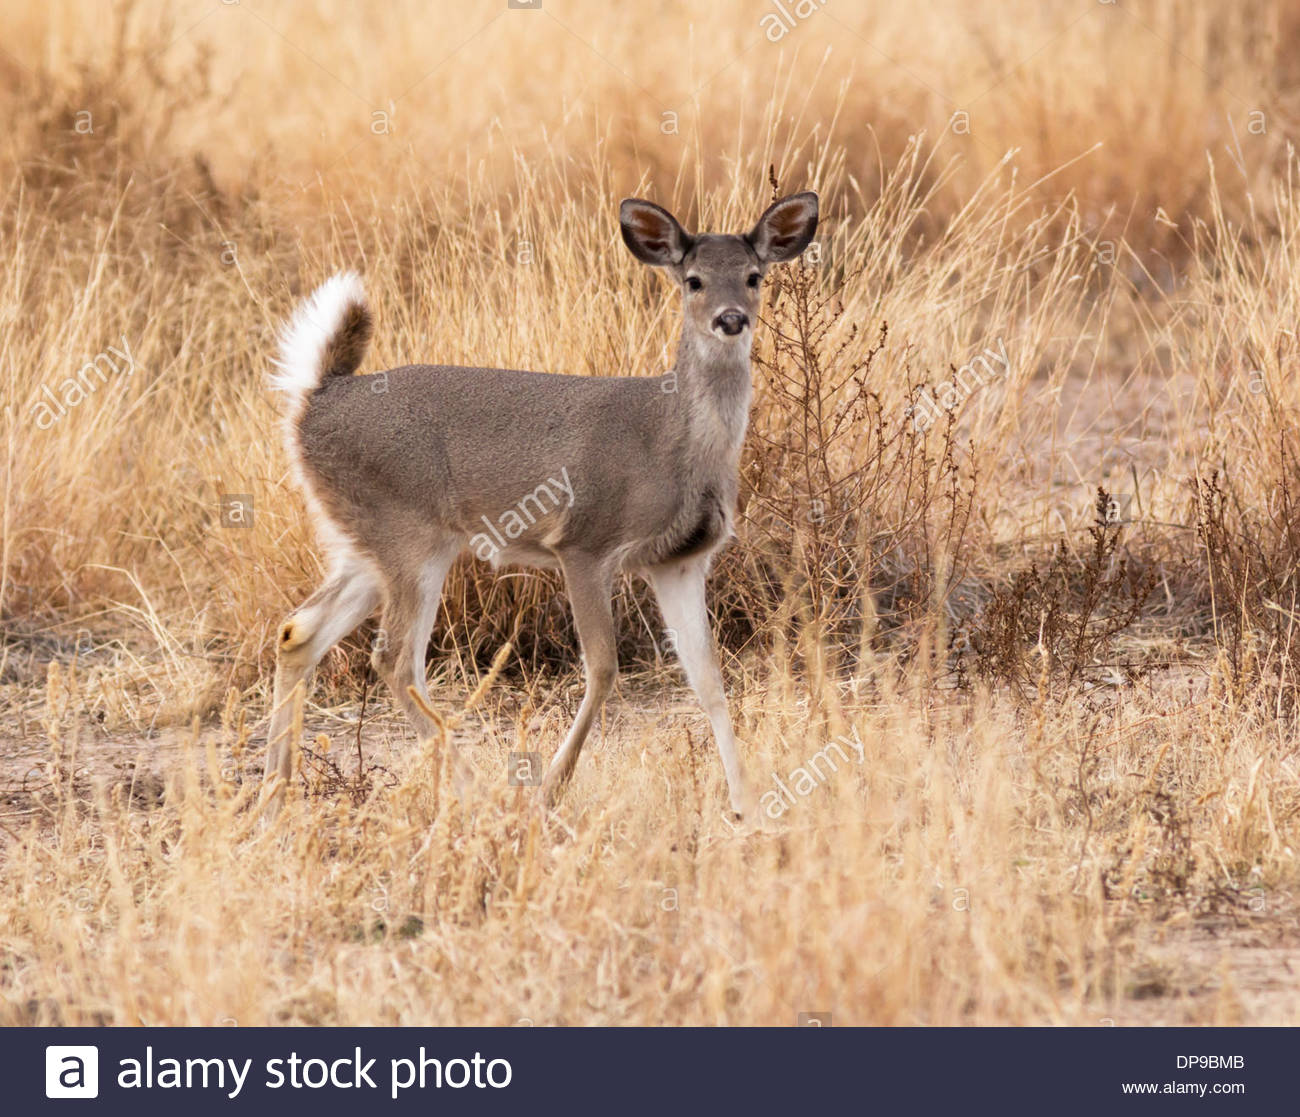 White tailed deer background stock photos